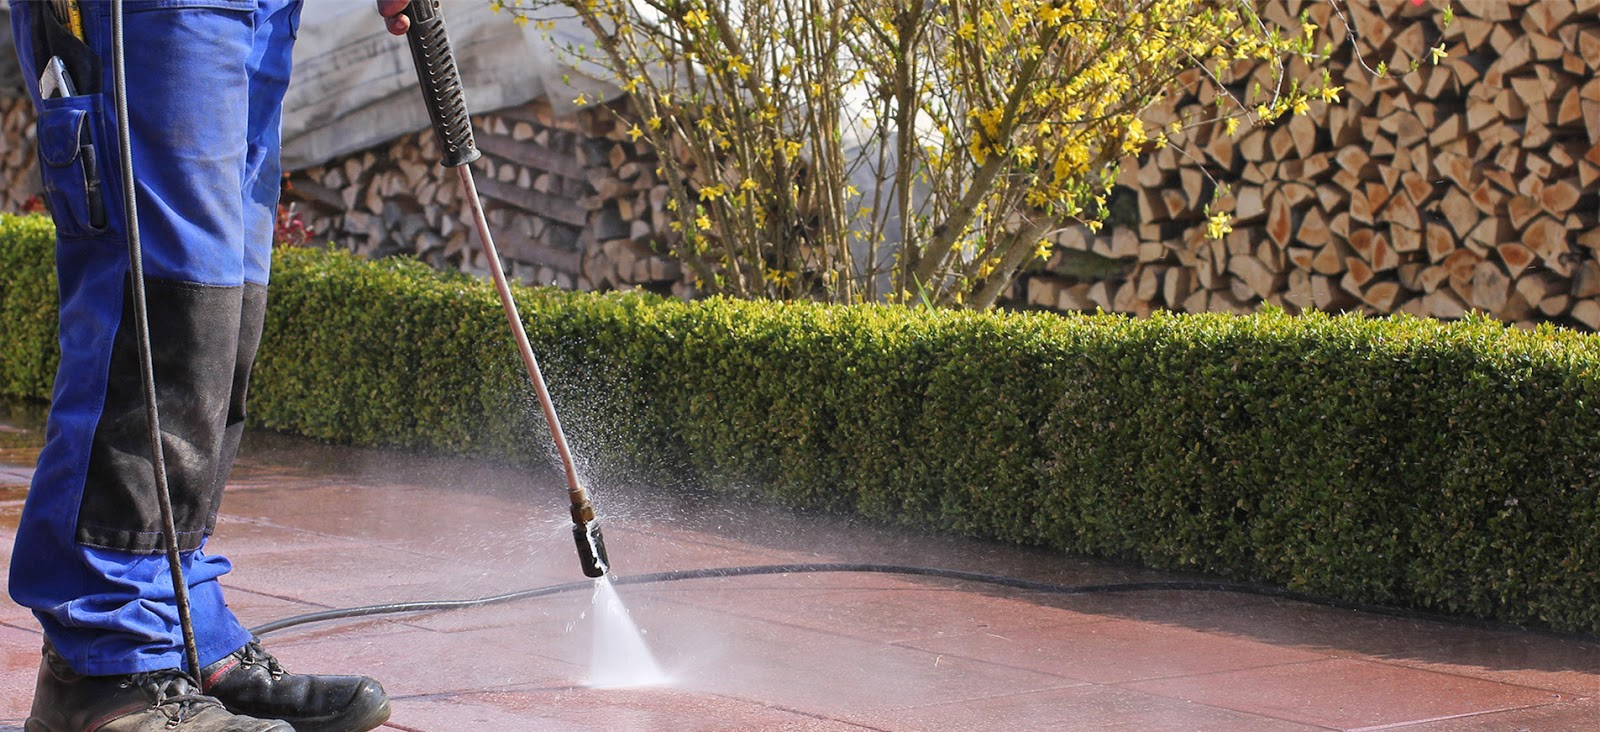 Morck Cleaning Homemade Pressure Washer Solution